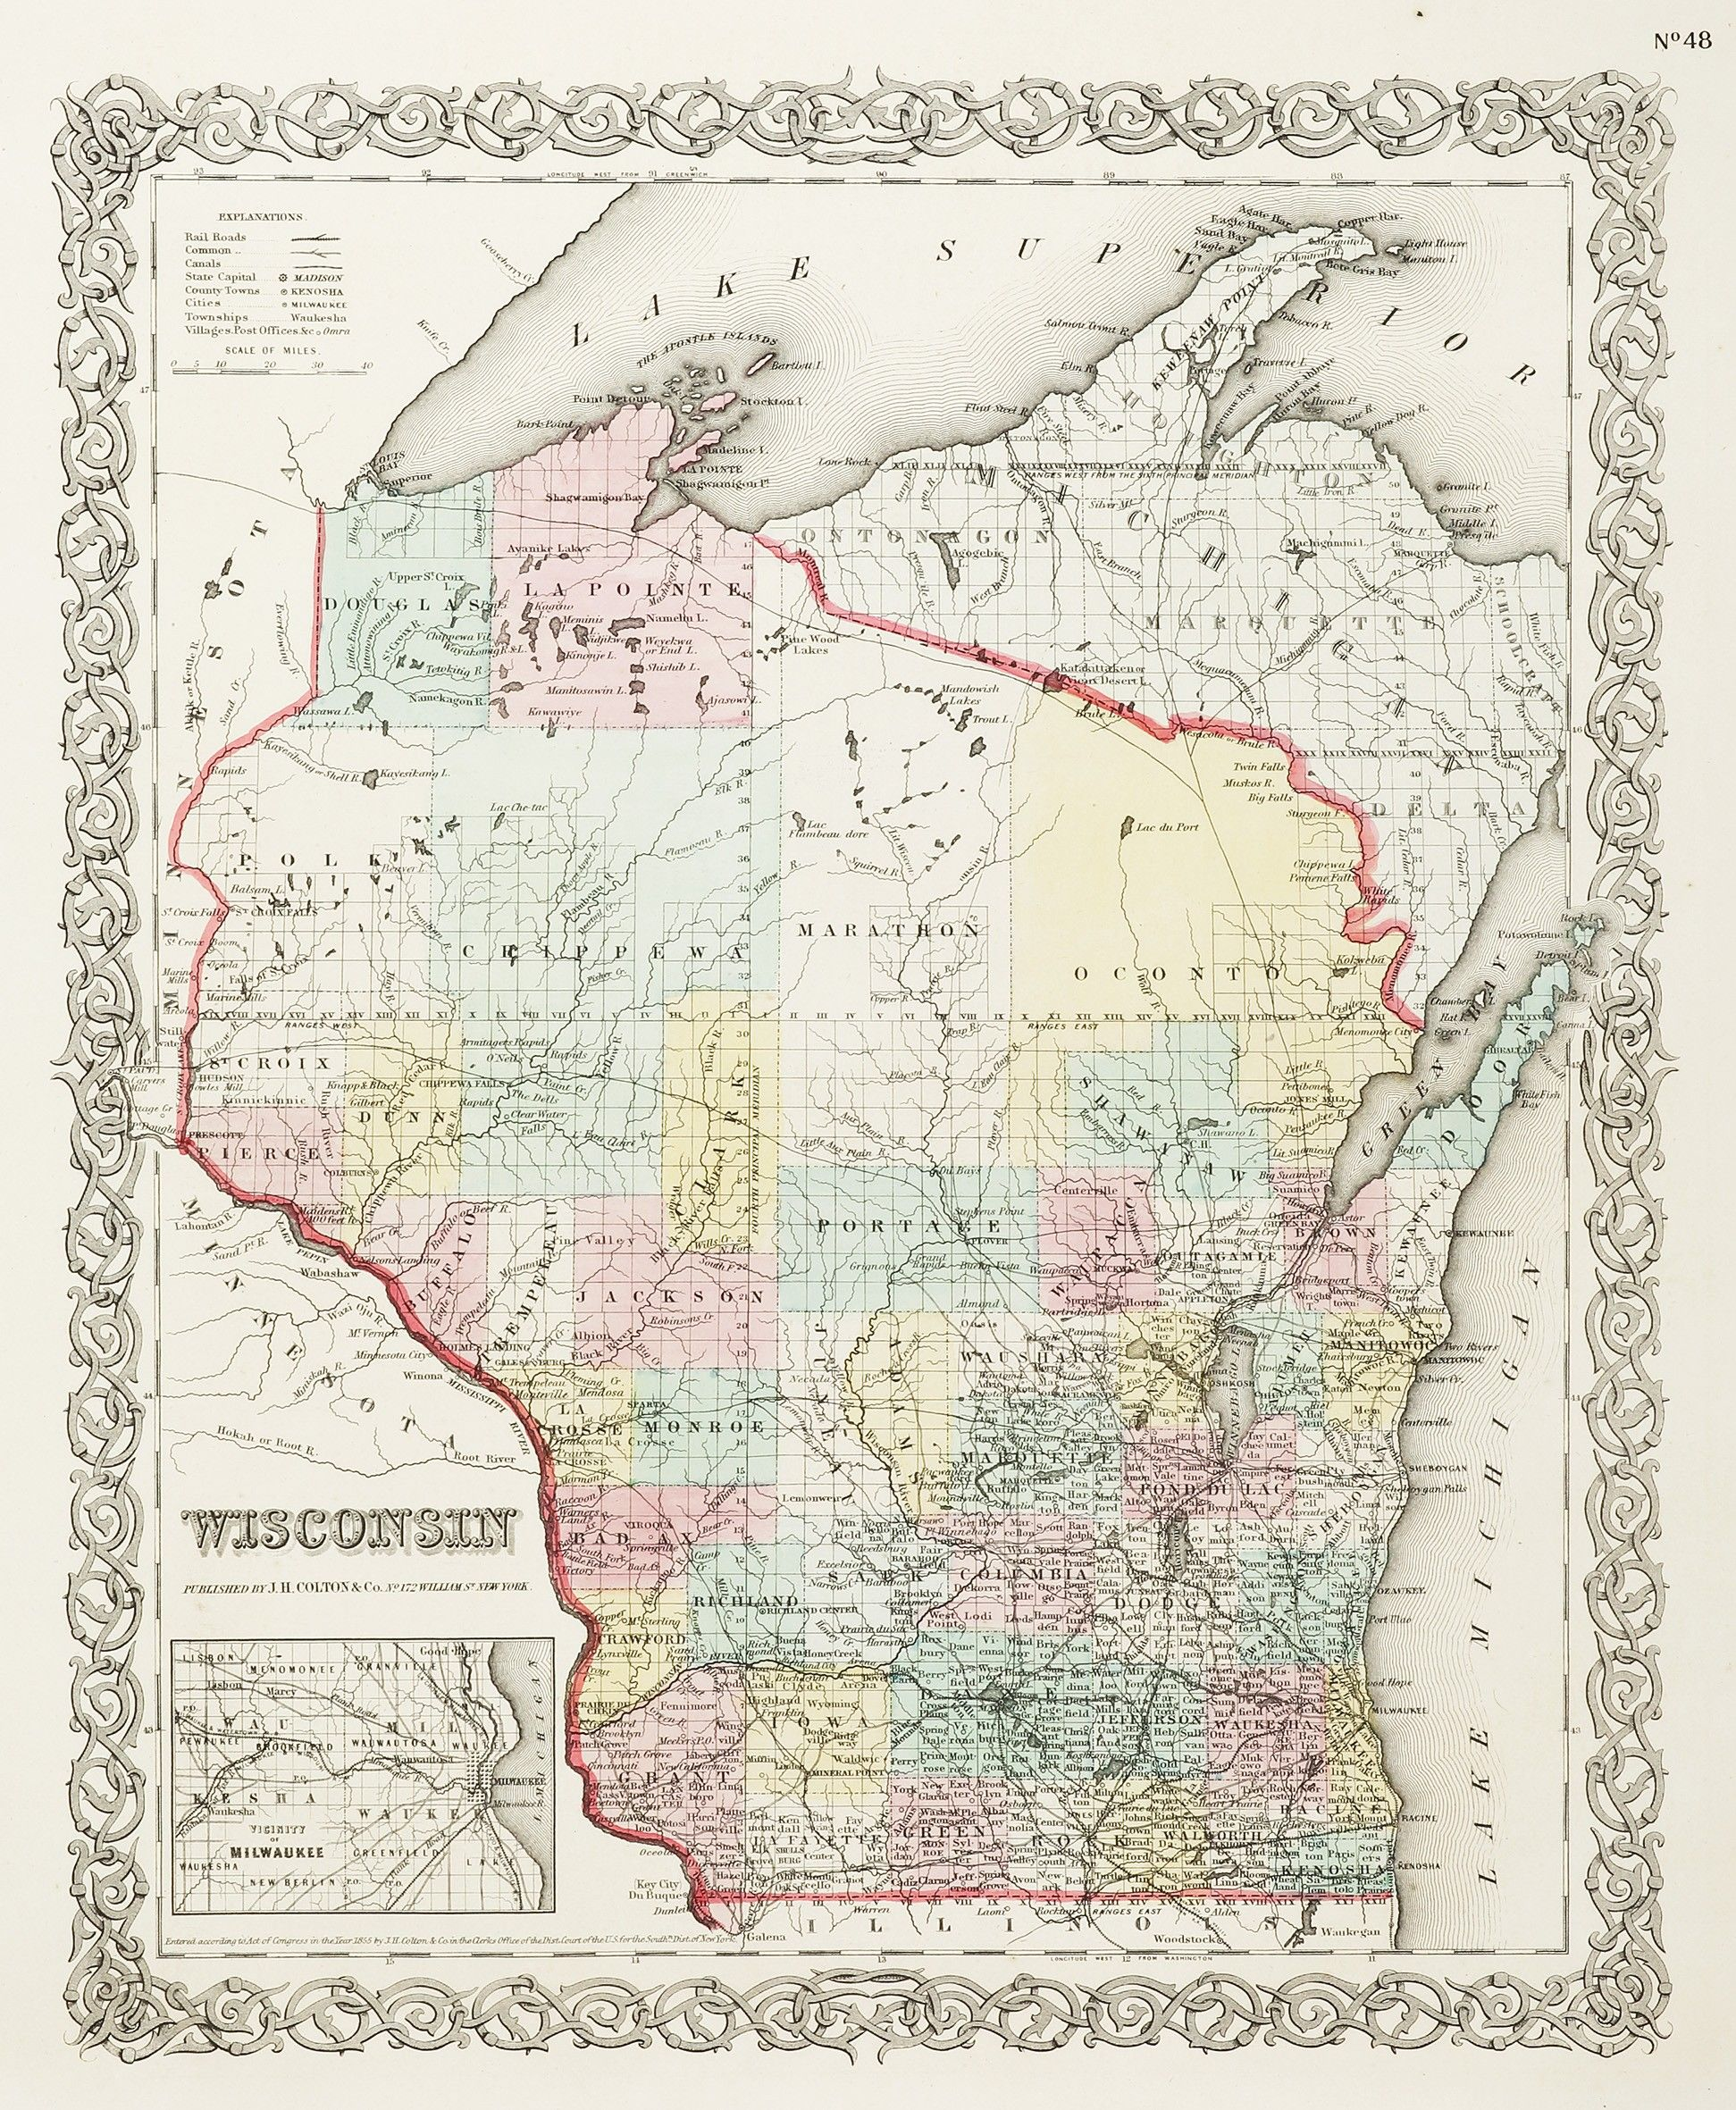 Wisconsin | Maps of United States & North America | Wisconsin ... on wisconsin world map, wisconsin indian map, wisconsin map of islands, wisconsin usa map,